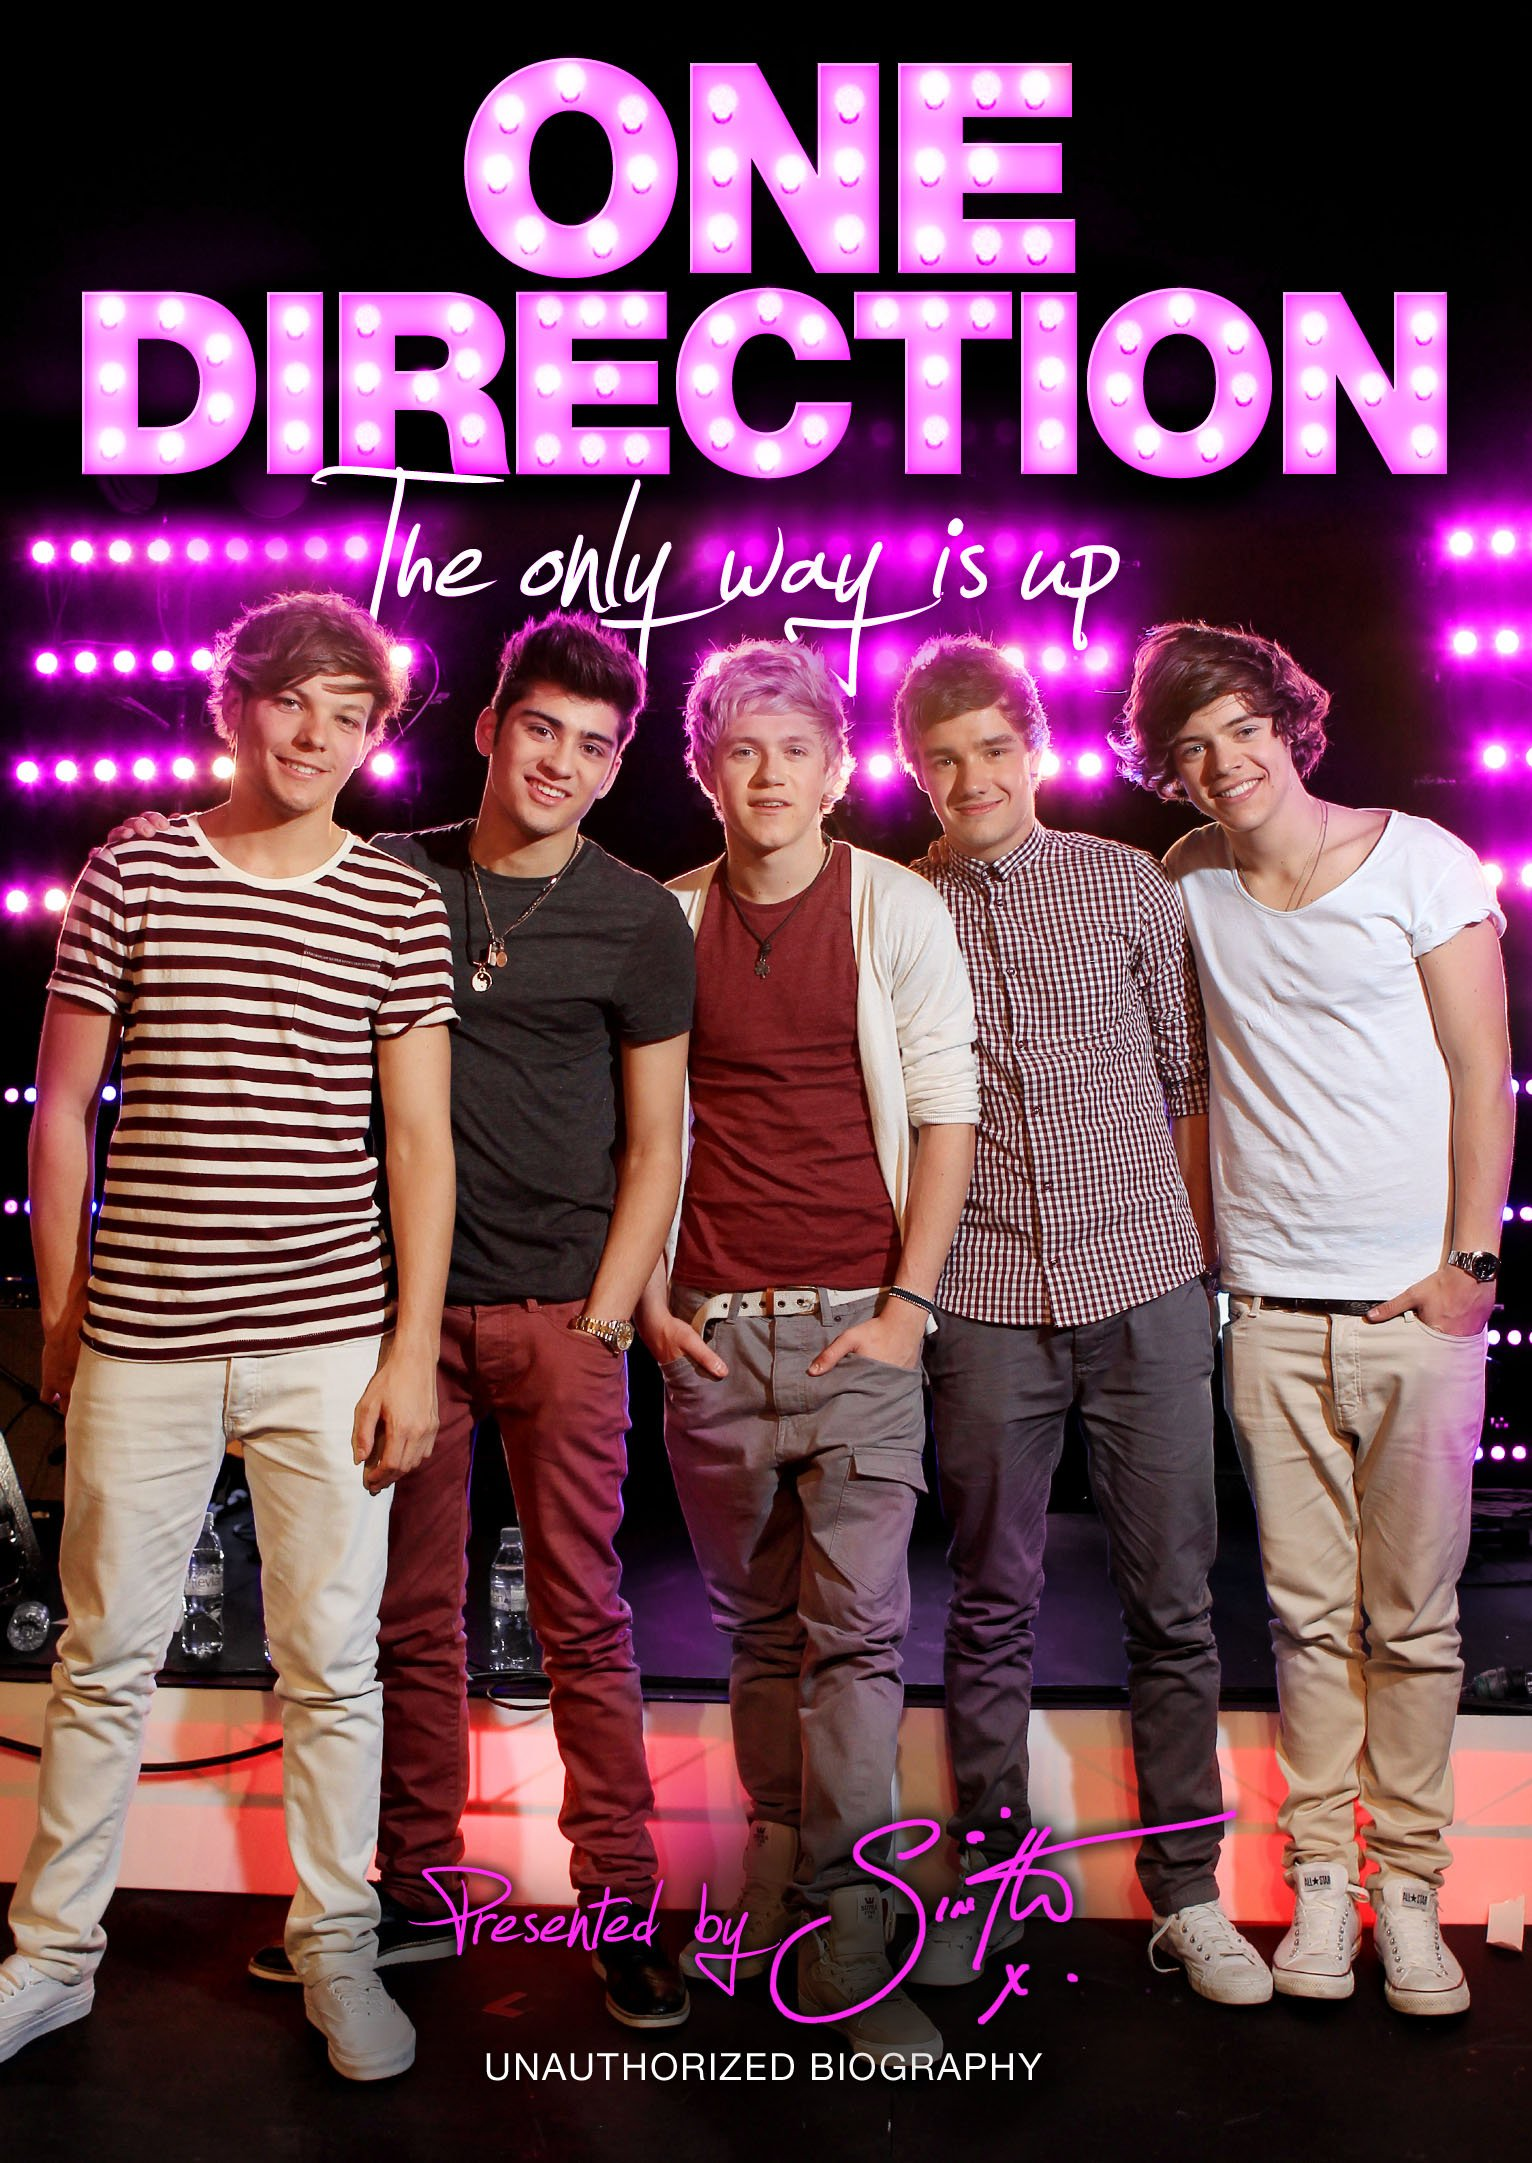 DVD : Niall Horan - One Direction: The Only Way Is Up (DVD)